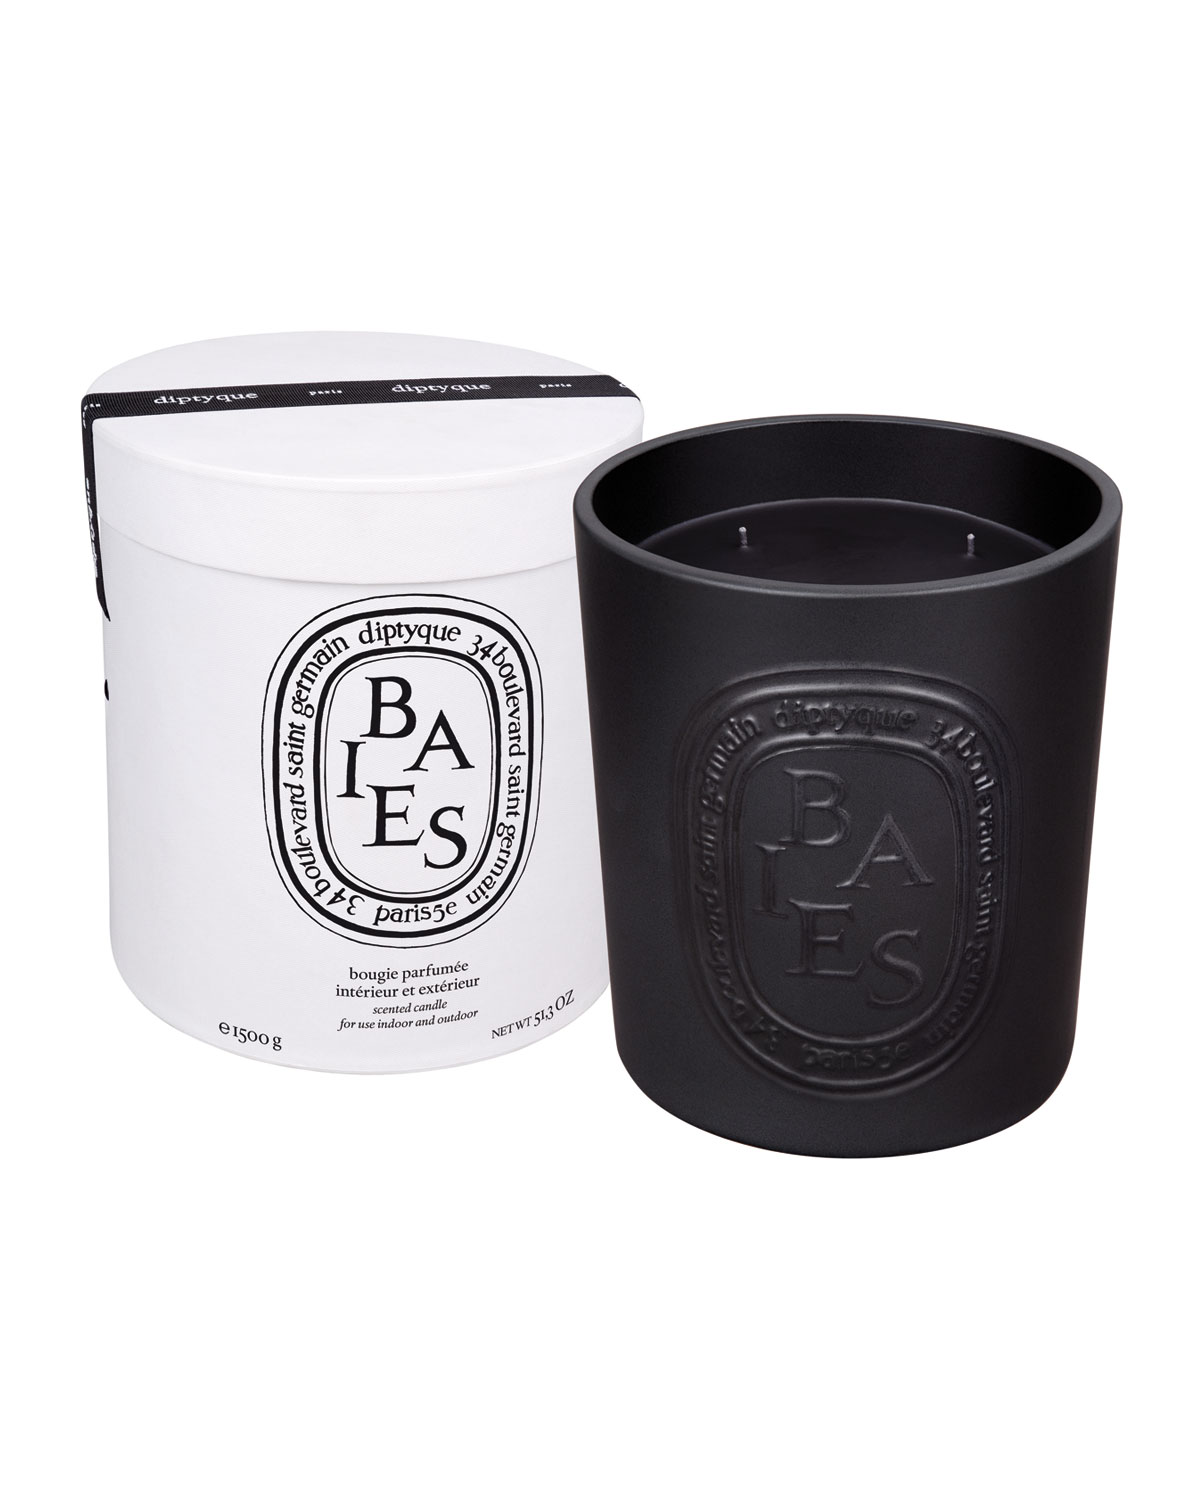 Diptyque Ceramic Baies Scented Candle